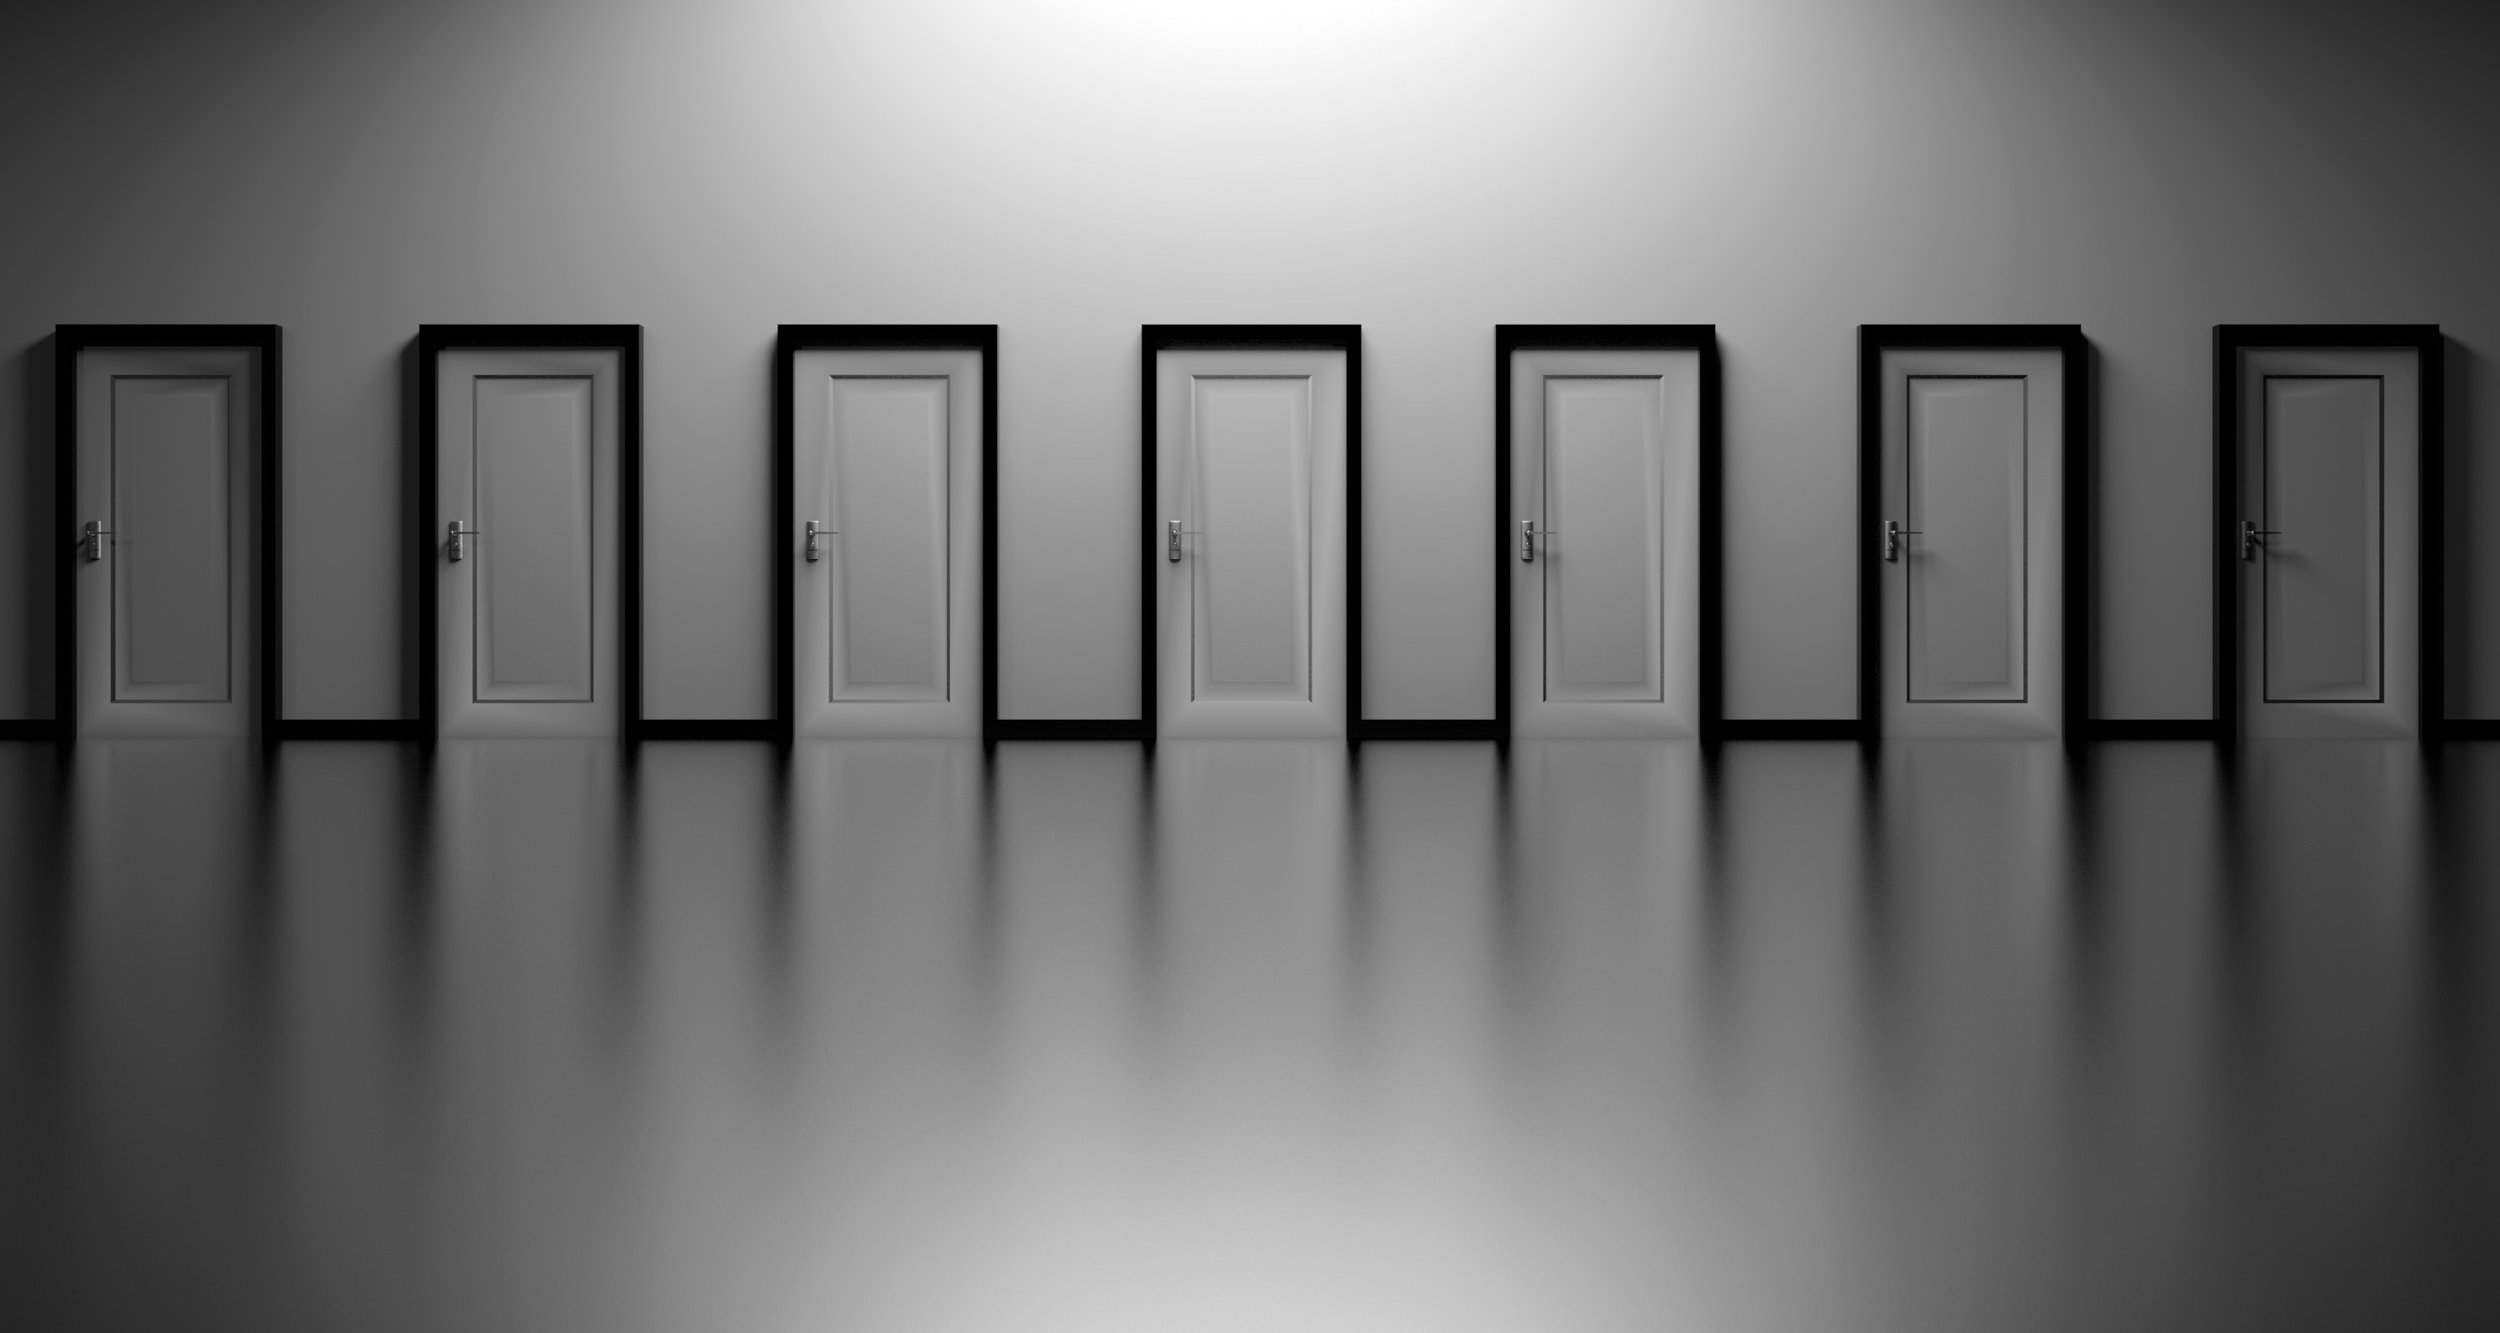 black-and-white-doors-opportunity-277017.jpg